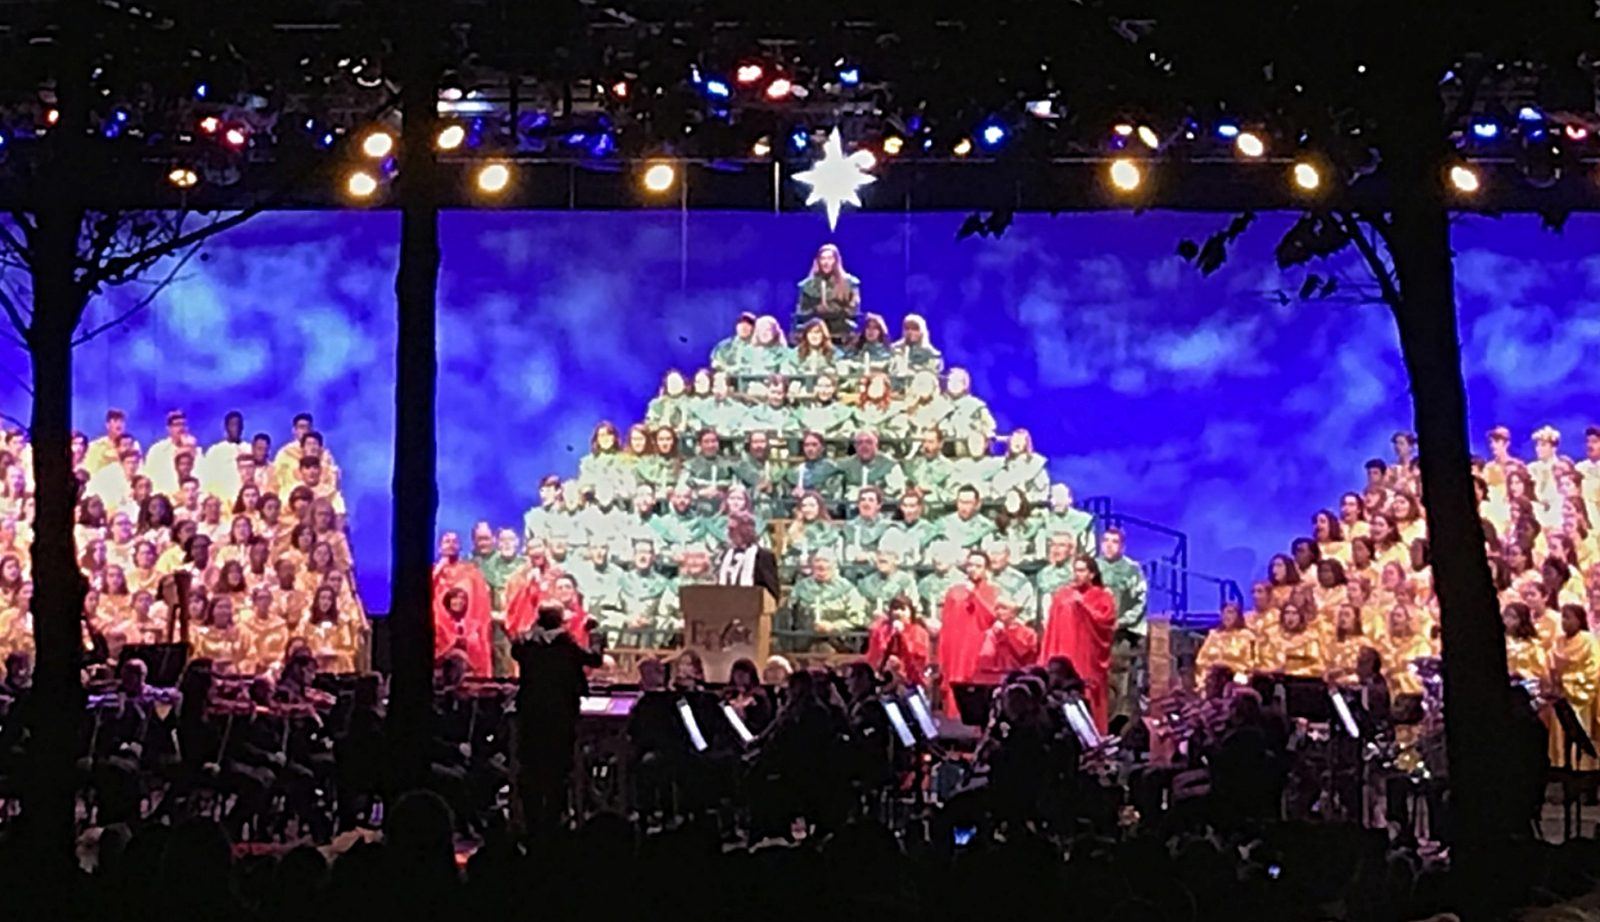 candlelight processional performance